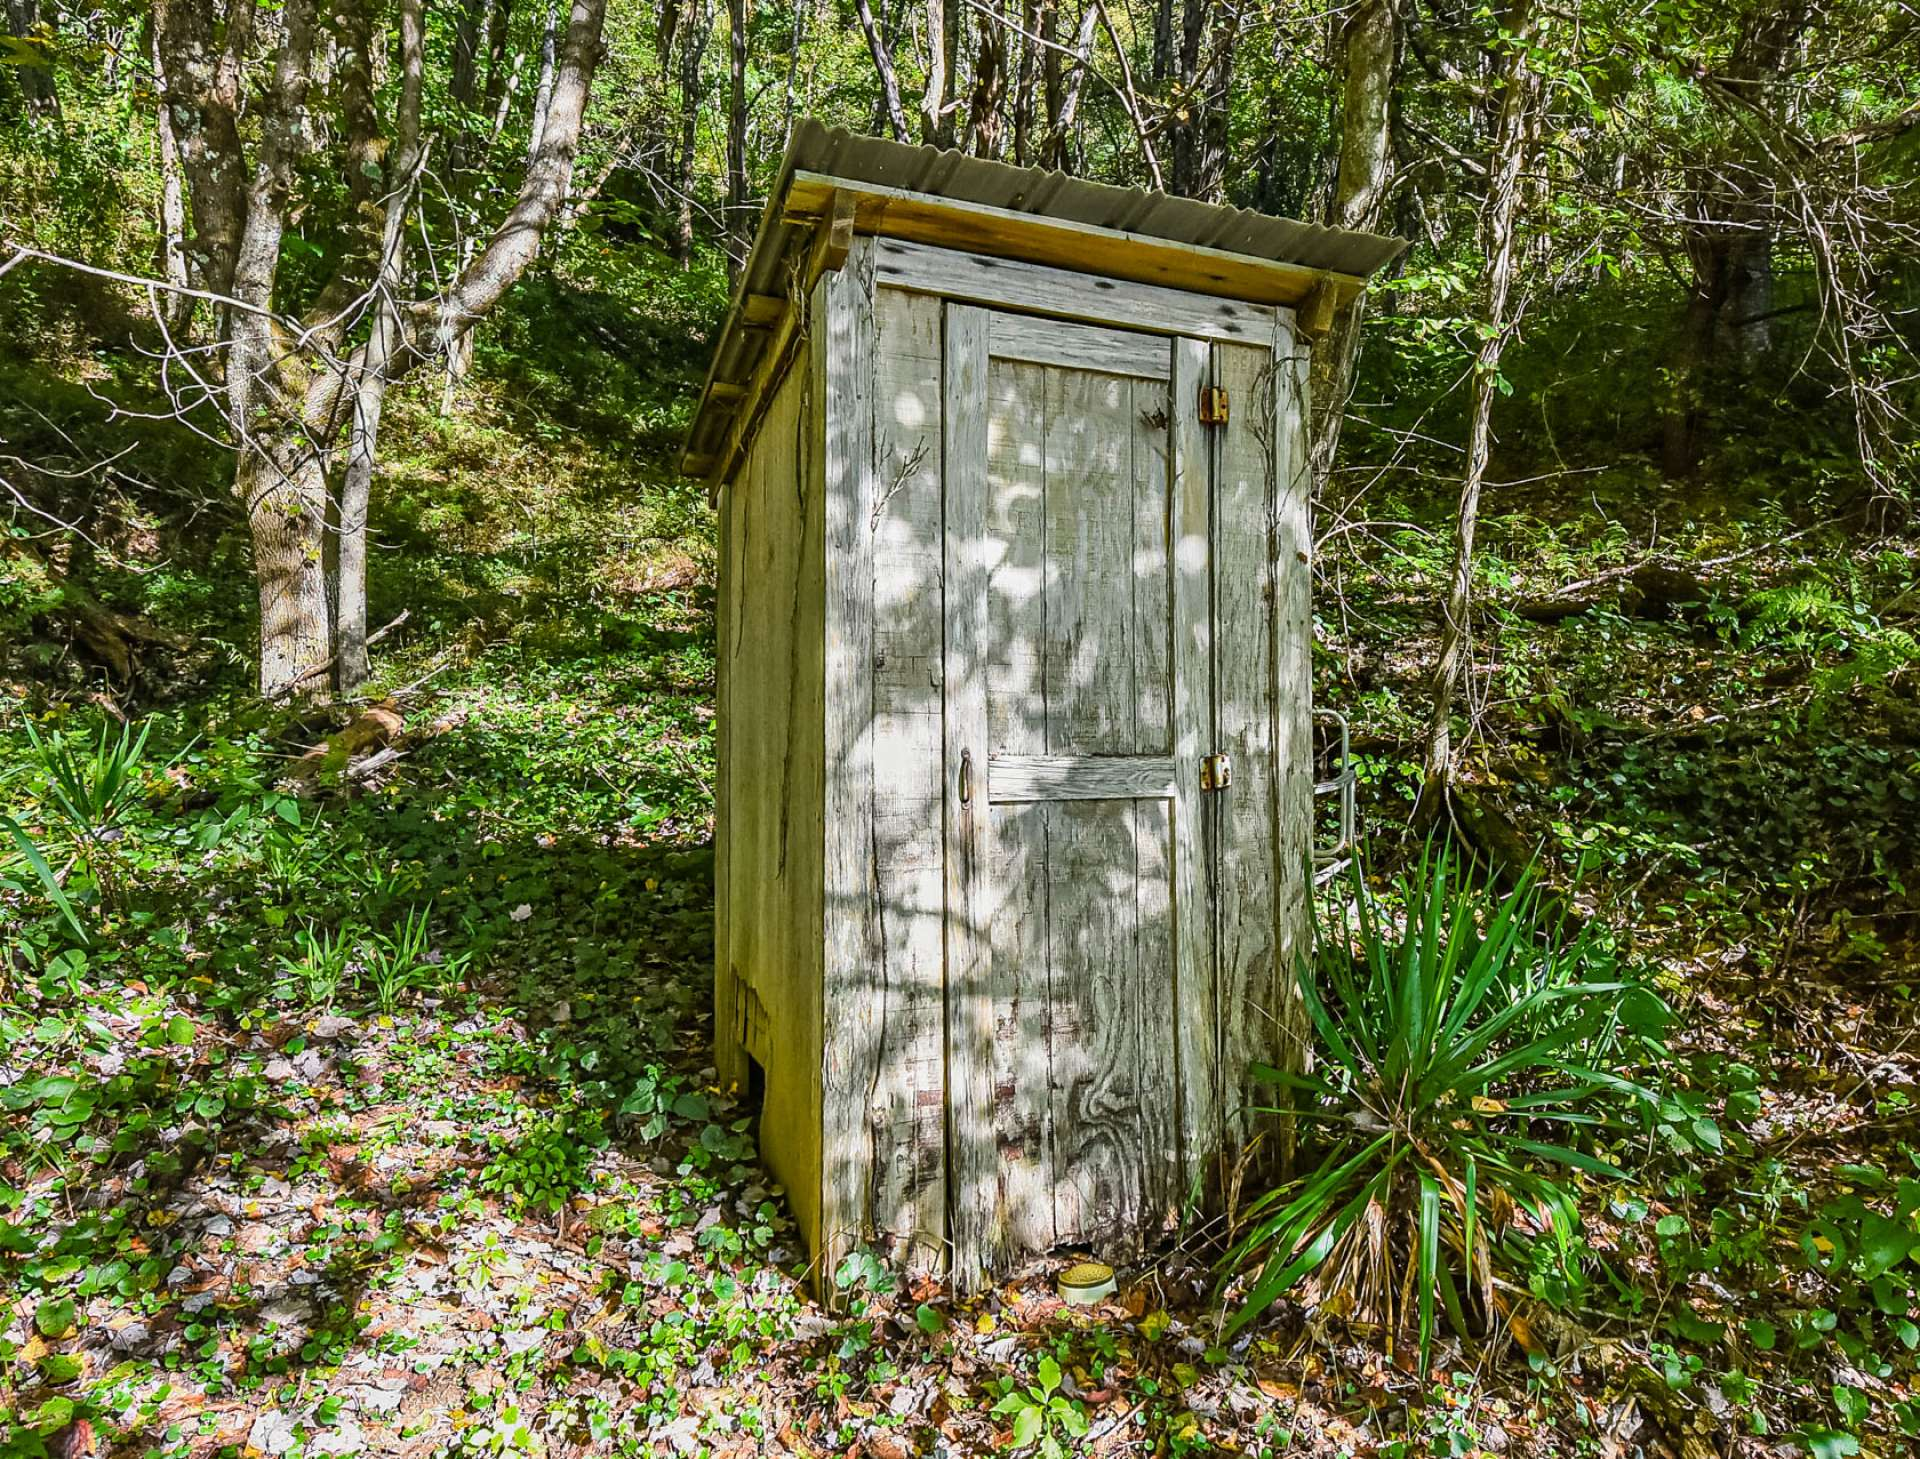 As a reminder of days gone by, this ornamental outhouse is quite the conversation item.